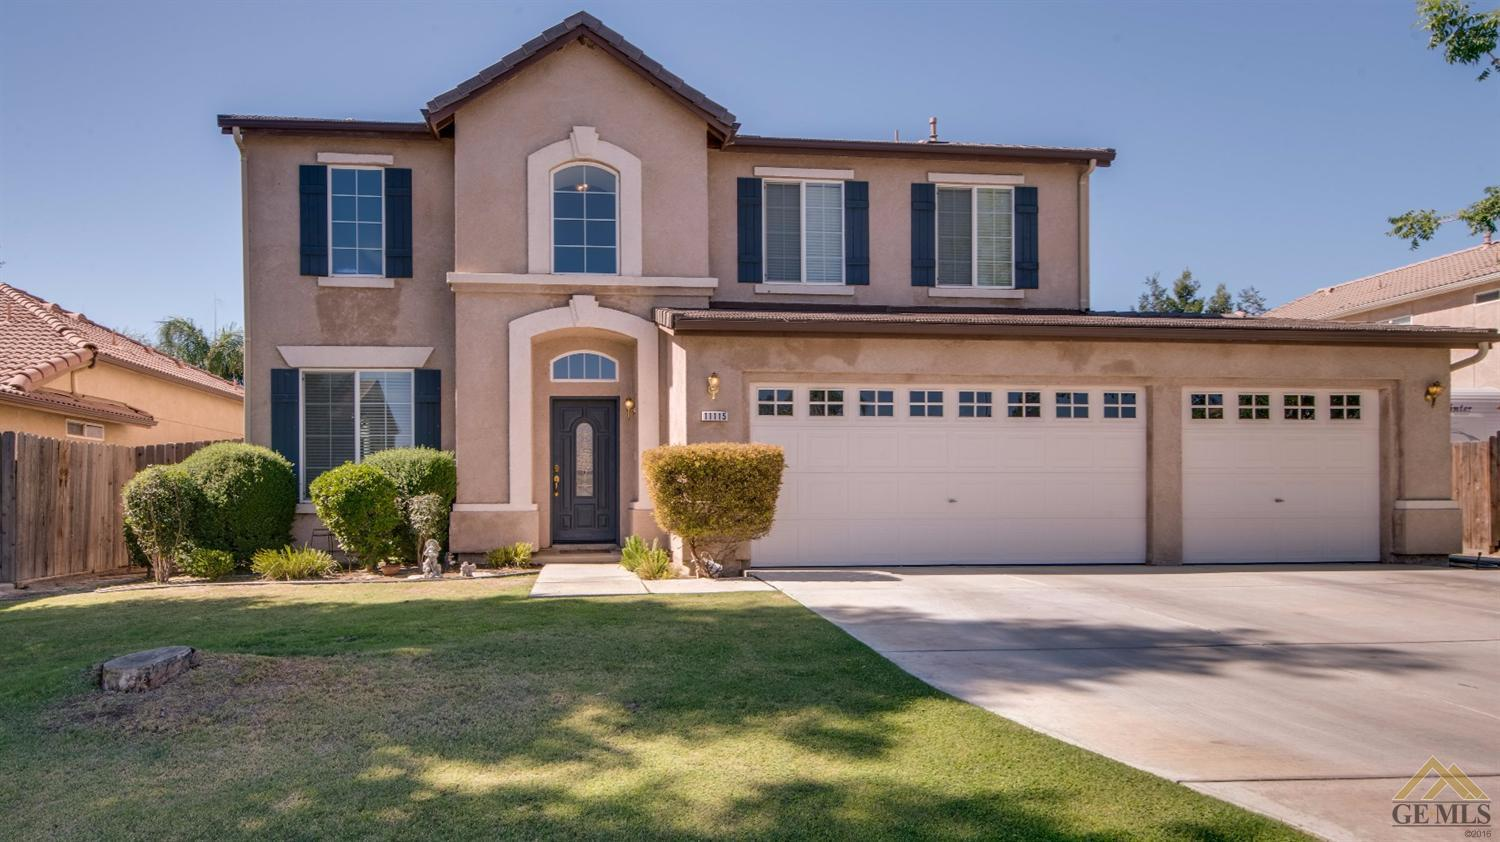 11115 Golden Valley Dr, Bakersfield, CA 93311